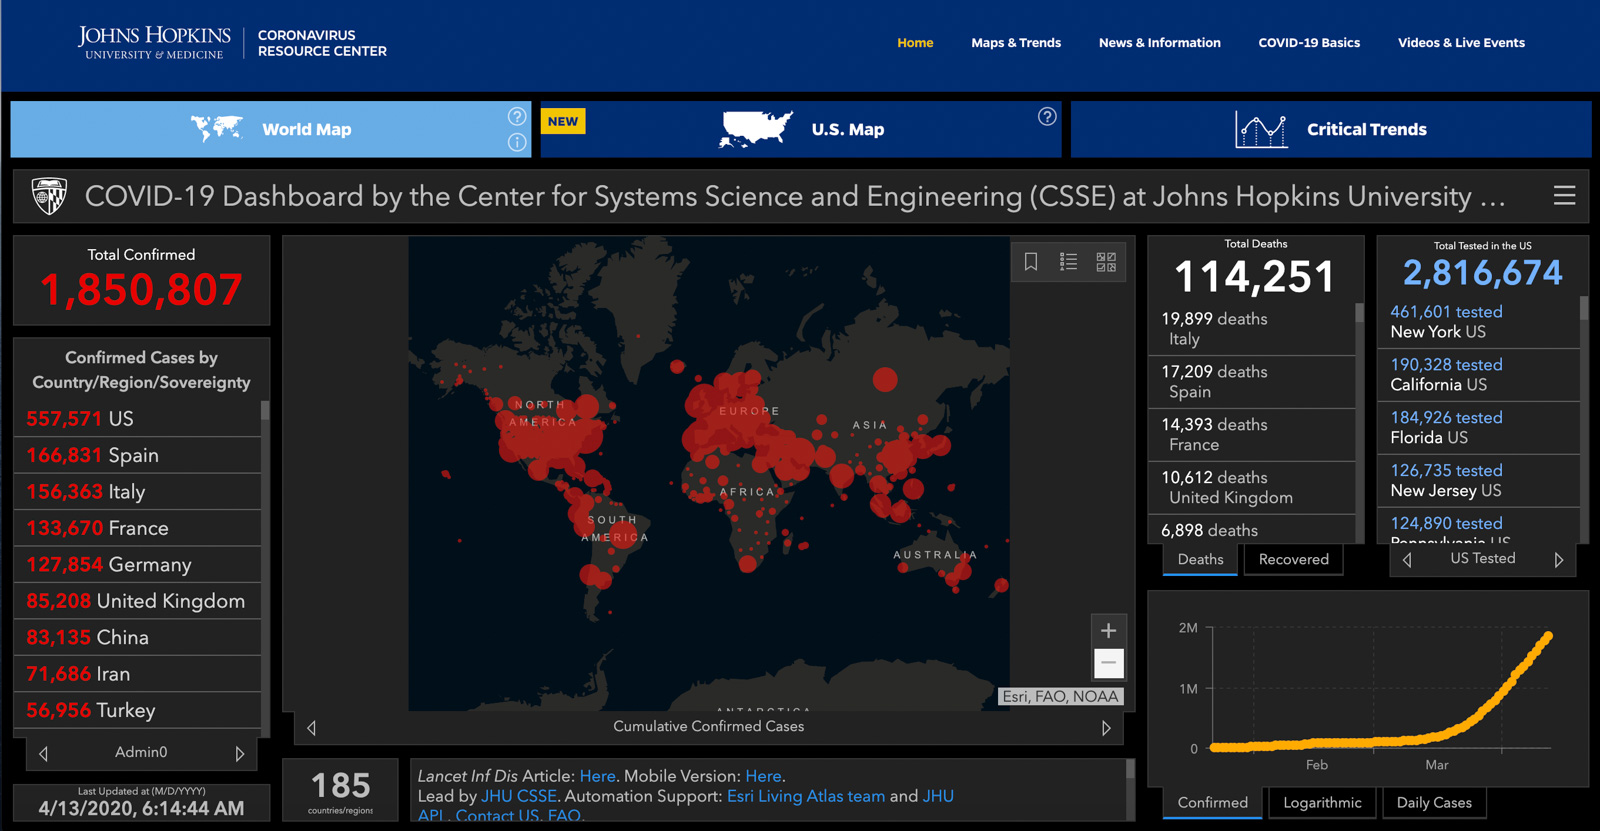 Click through to John Hopkins CSSE for the latest dashboard update.